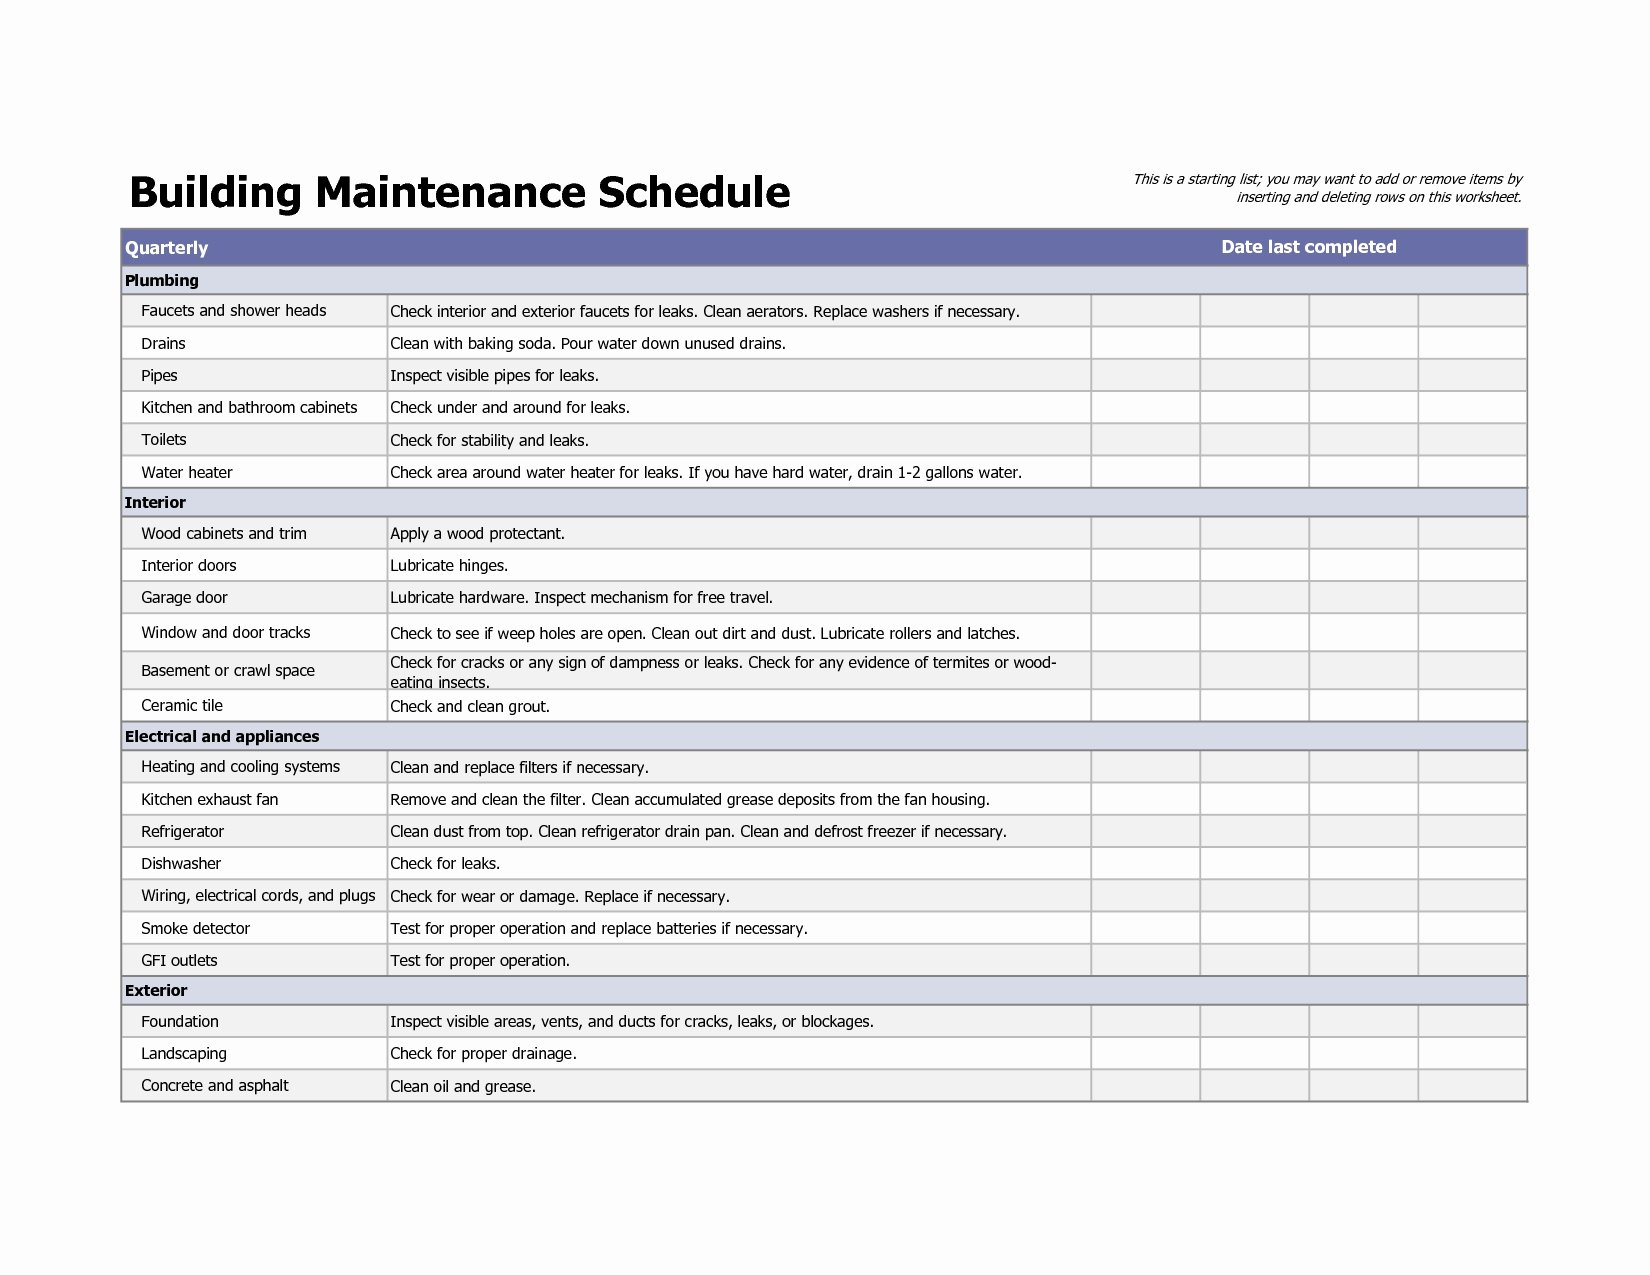 Facility Maintenance Plan Template Fresh Building Maintenance Schedule Excel Template